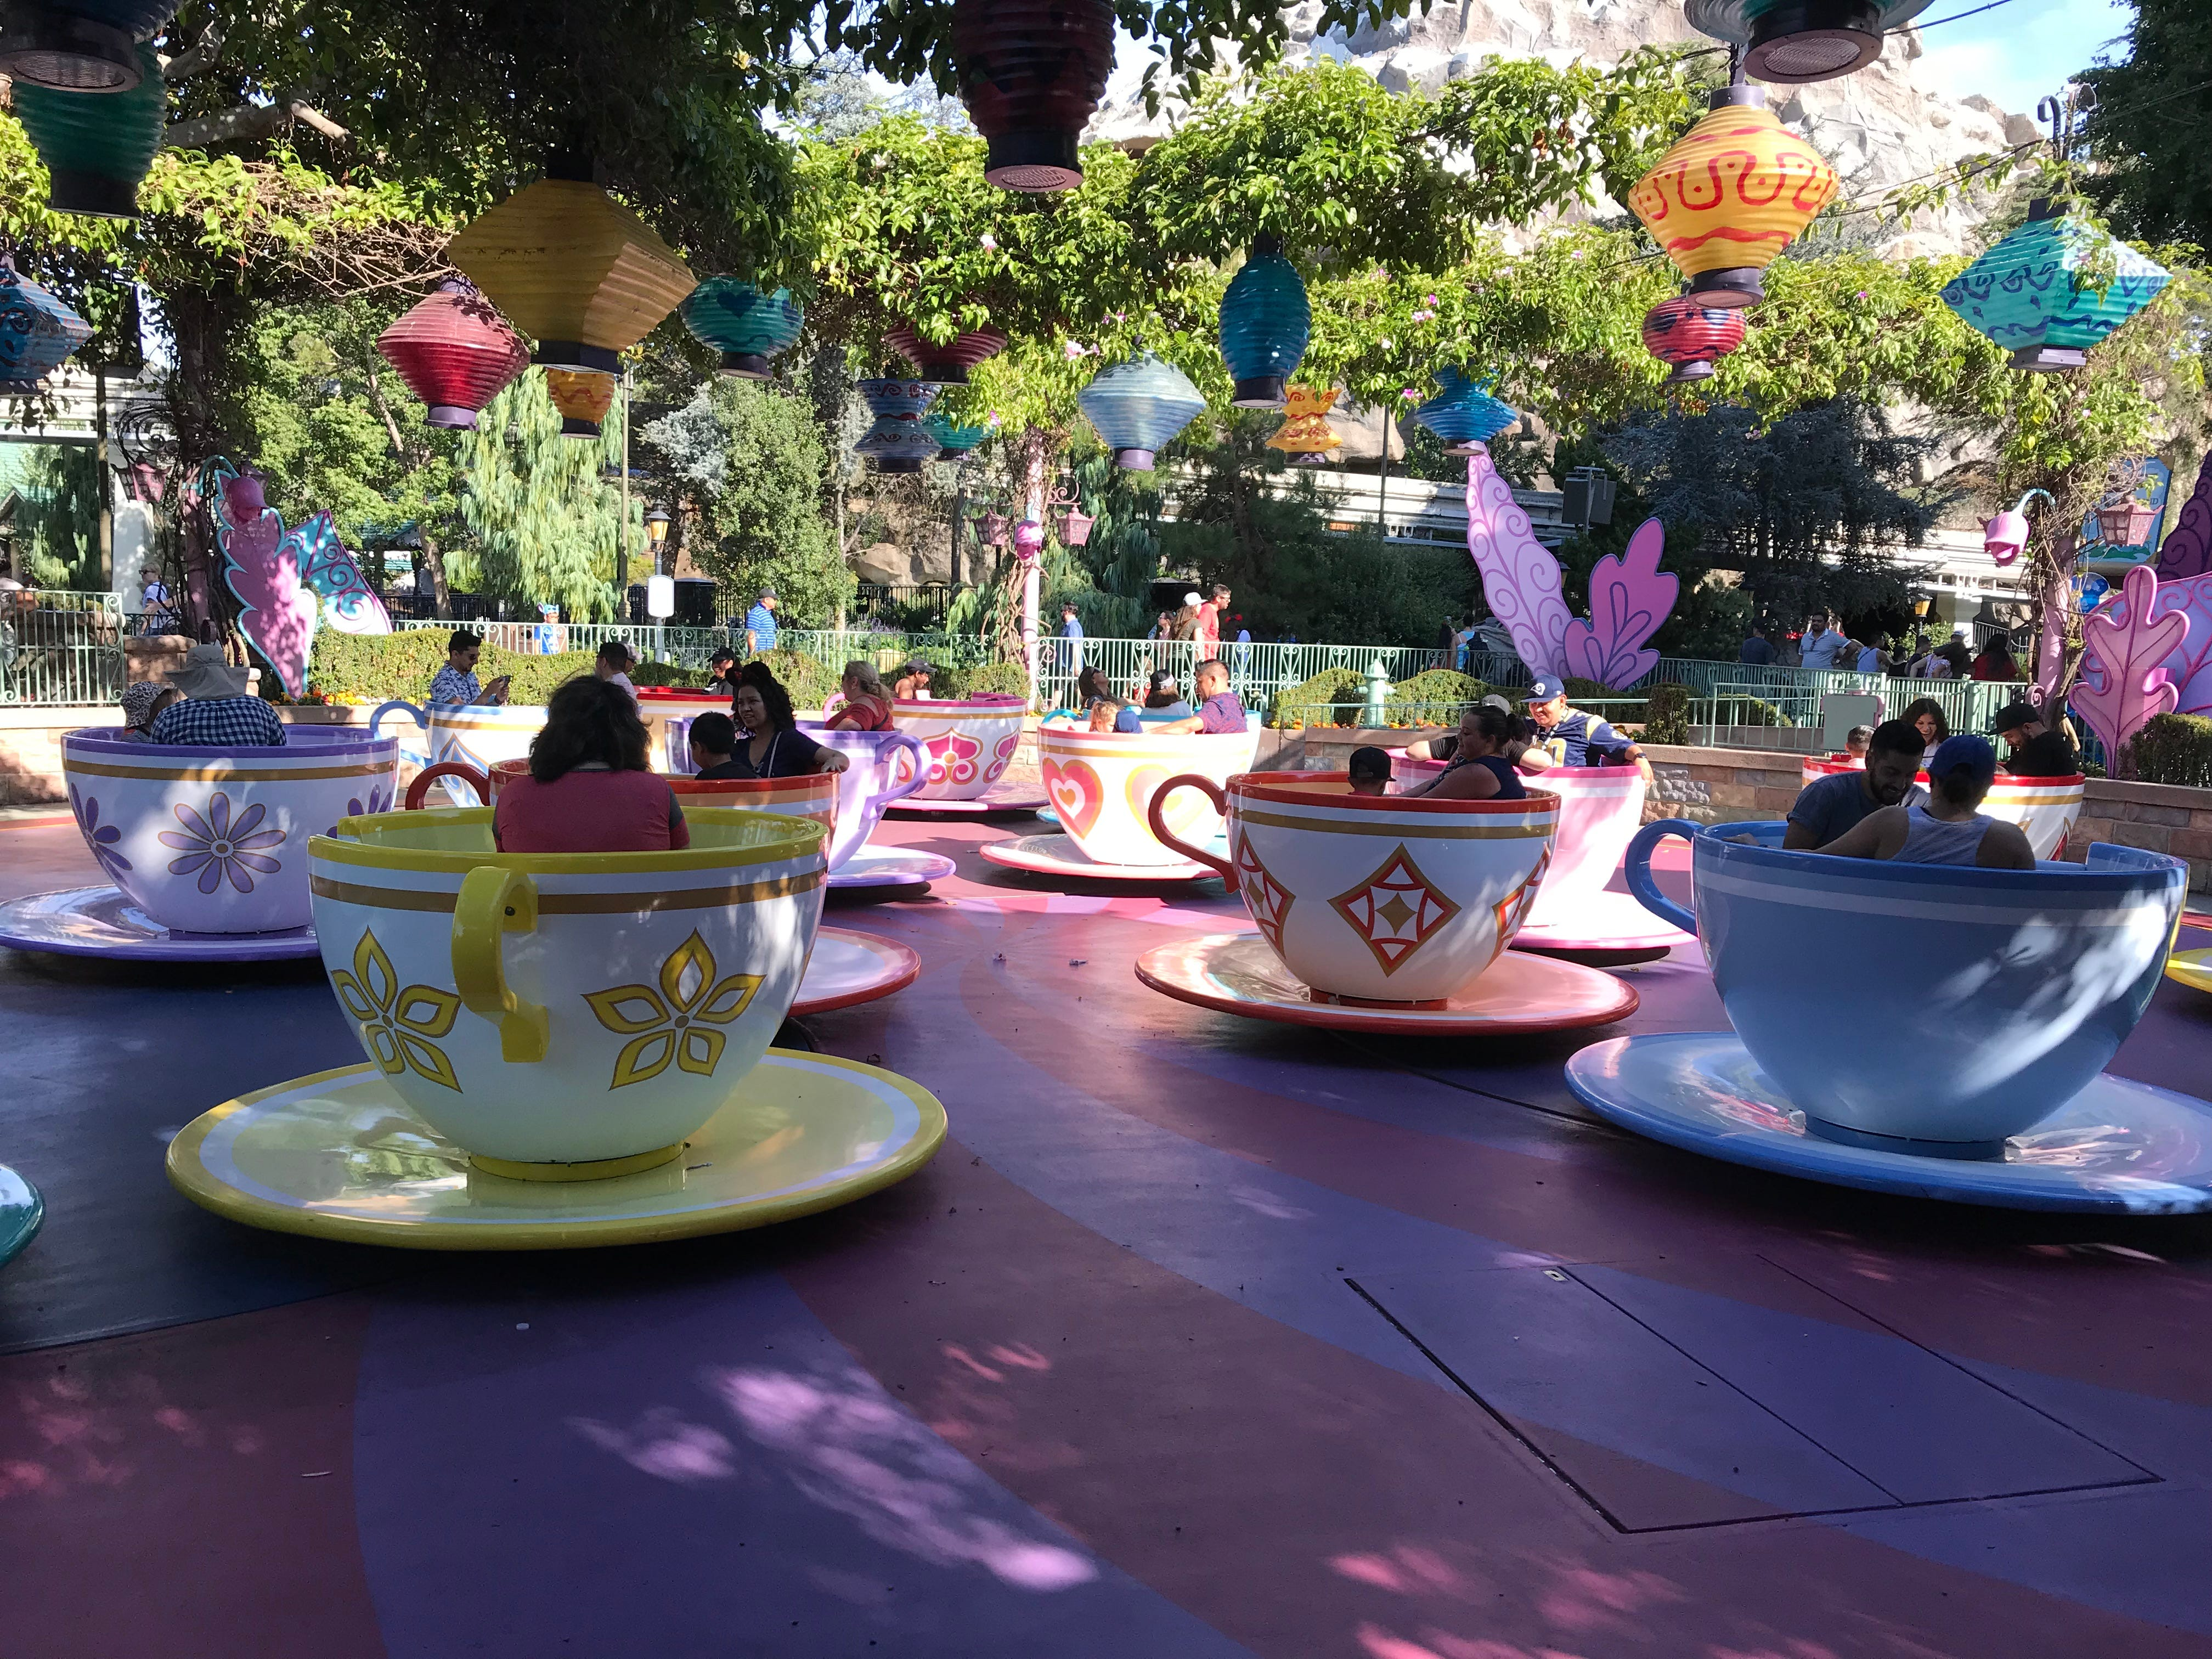 8 rides in under 2.5 hours: These Disneyland rides may be underrated